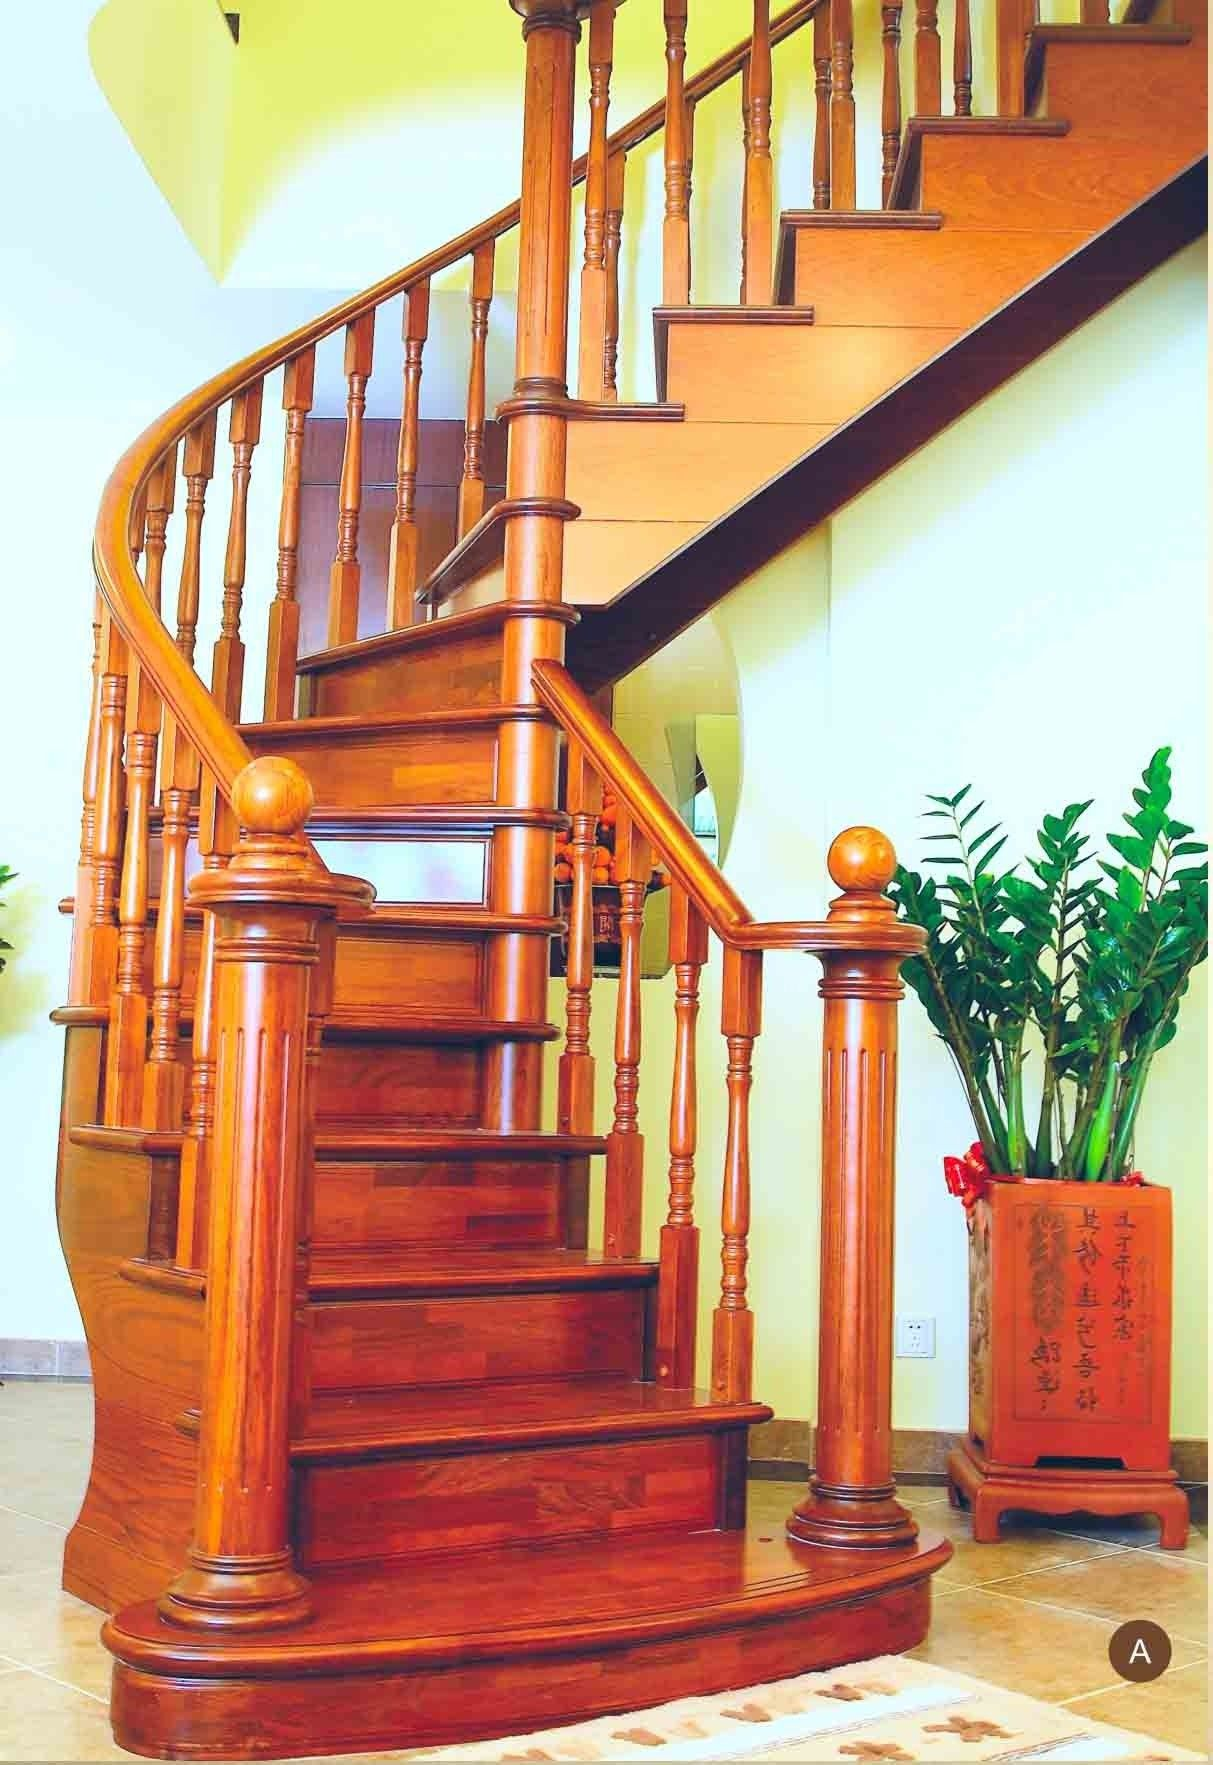 Used Metal Spiral Stairs Staircase For Sale Buy Exterior Stair   Steel Spiral Staircase For Sale   Wrought Iron   Staircase Design   Kits   Cast Iron   Stair Handrail